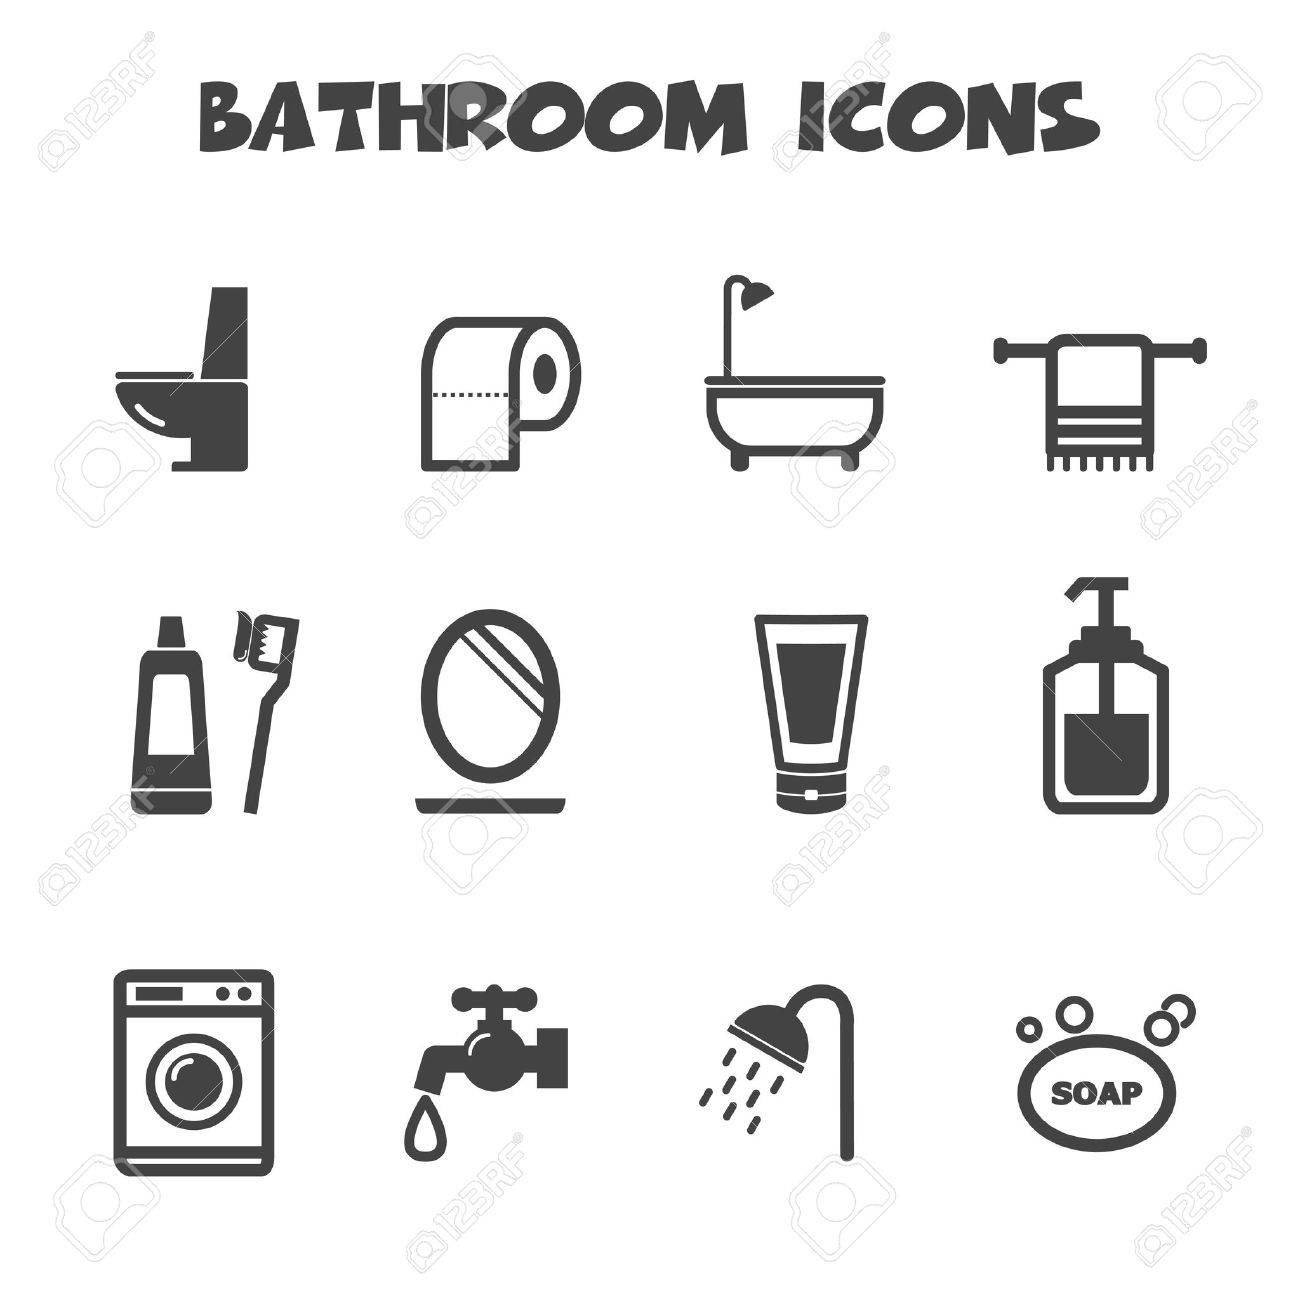 Bathroom icons symbols royalty free cliparts vectors and stock bathroom icons symbols stock vector 26617840 biocorpaavc Images